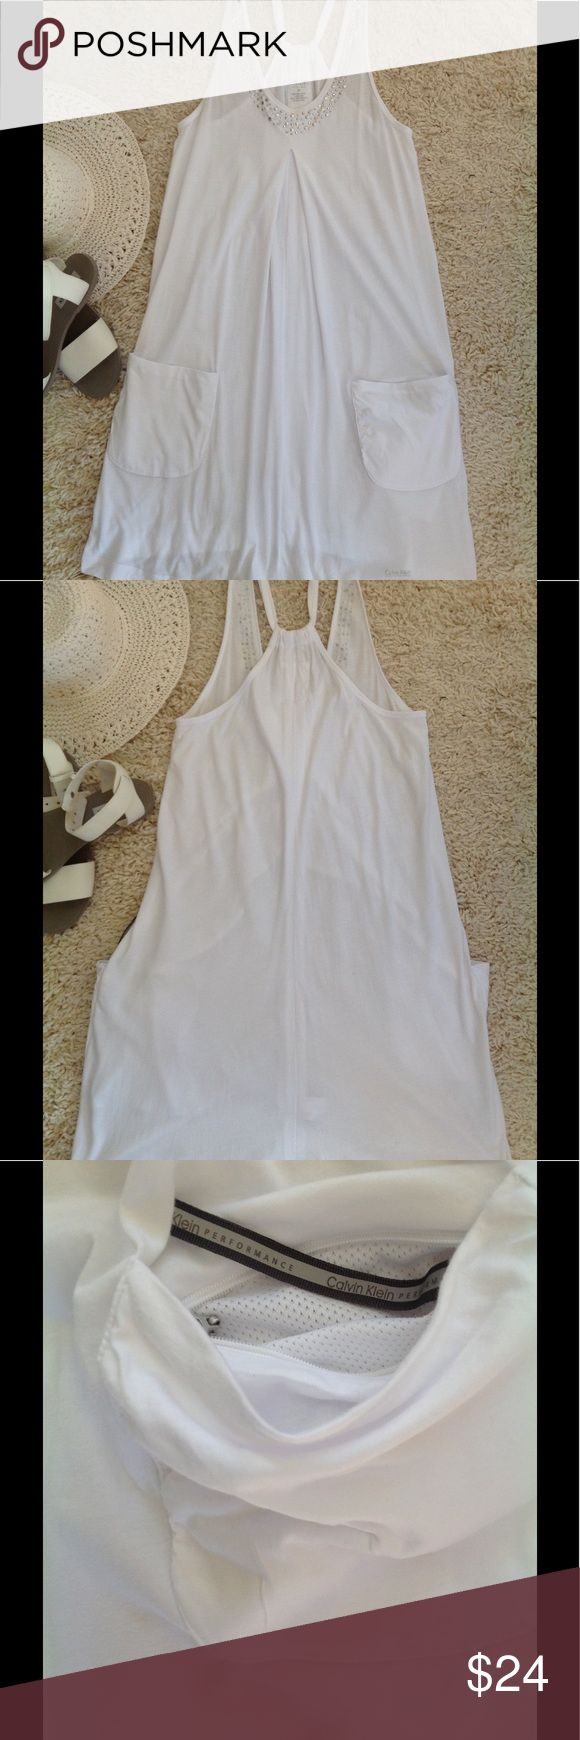 Calvin Klein Beach coverup White coverup featuring two front pockets, one with a mesh zipper lining to hold keys etc. The front top portion has a detailed silver embellishment. Very cute and practical for beachwear. Perfect condition! Machine washable from a smoke free and pet free home. Calvin Klein Swim Coverups